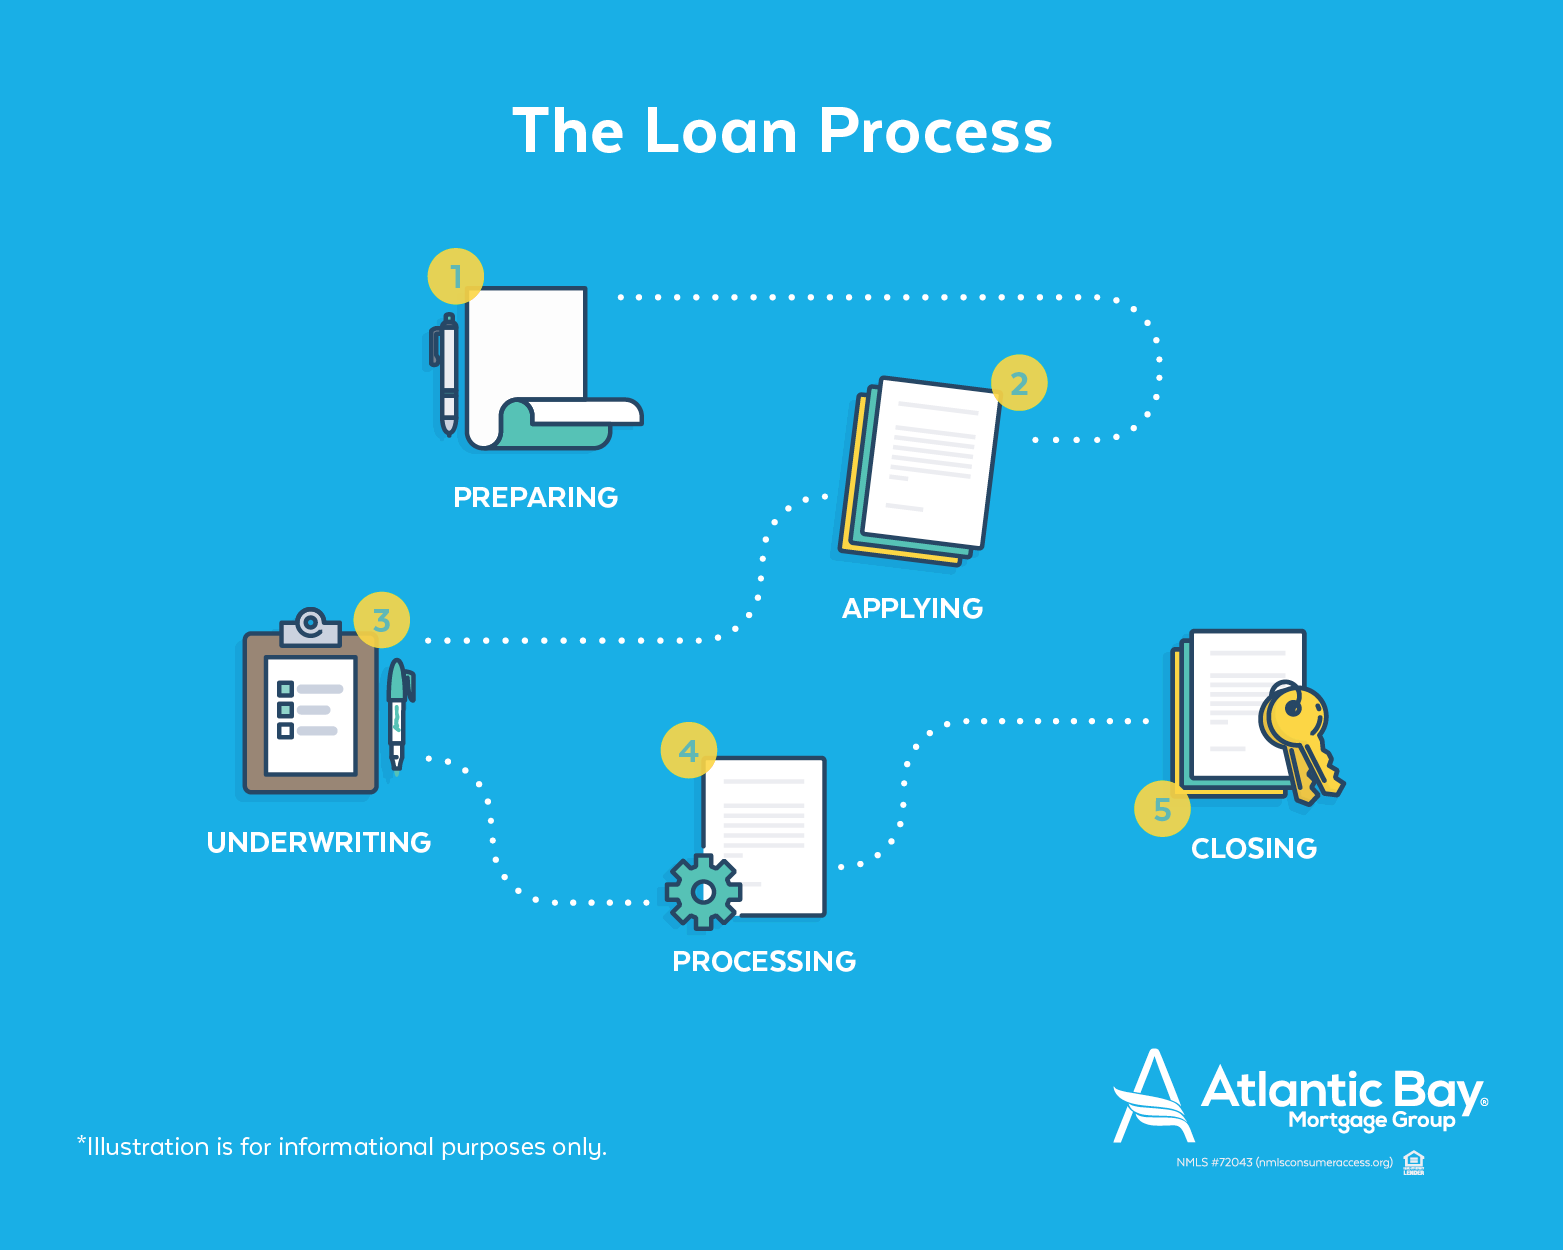 Loan Process Explained